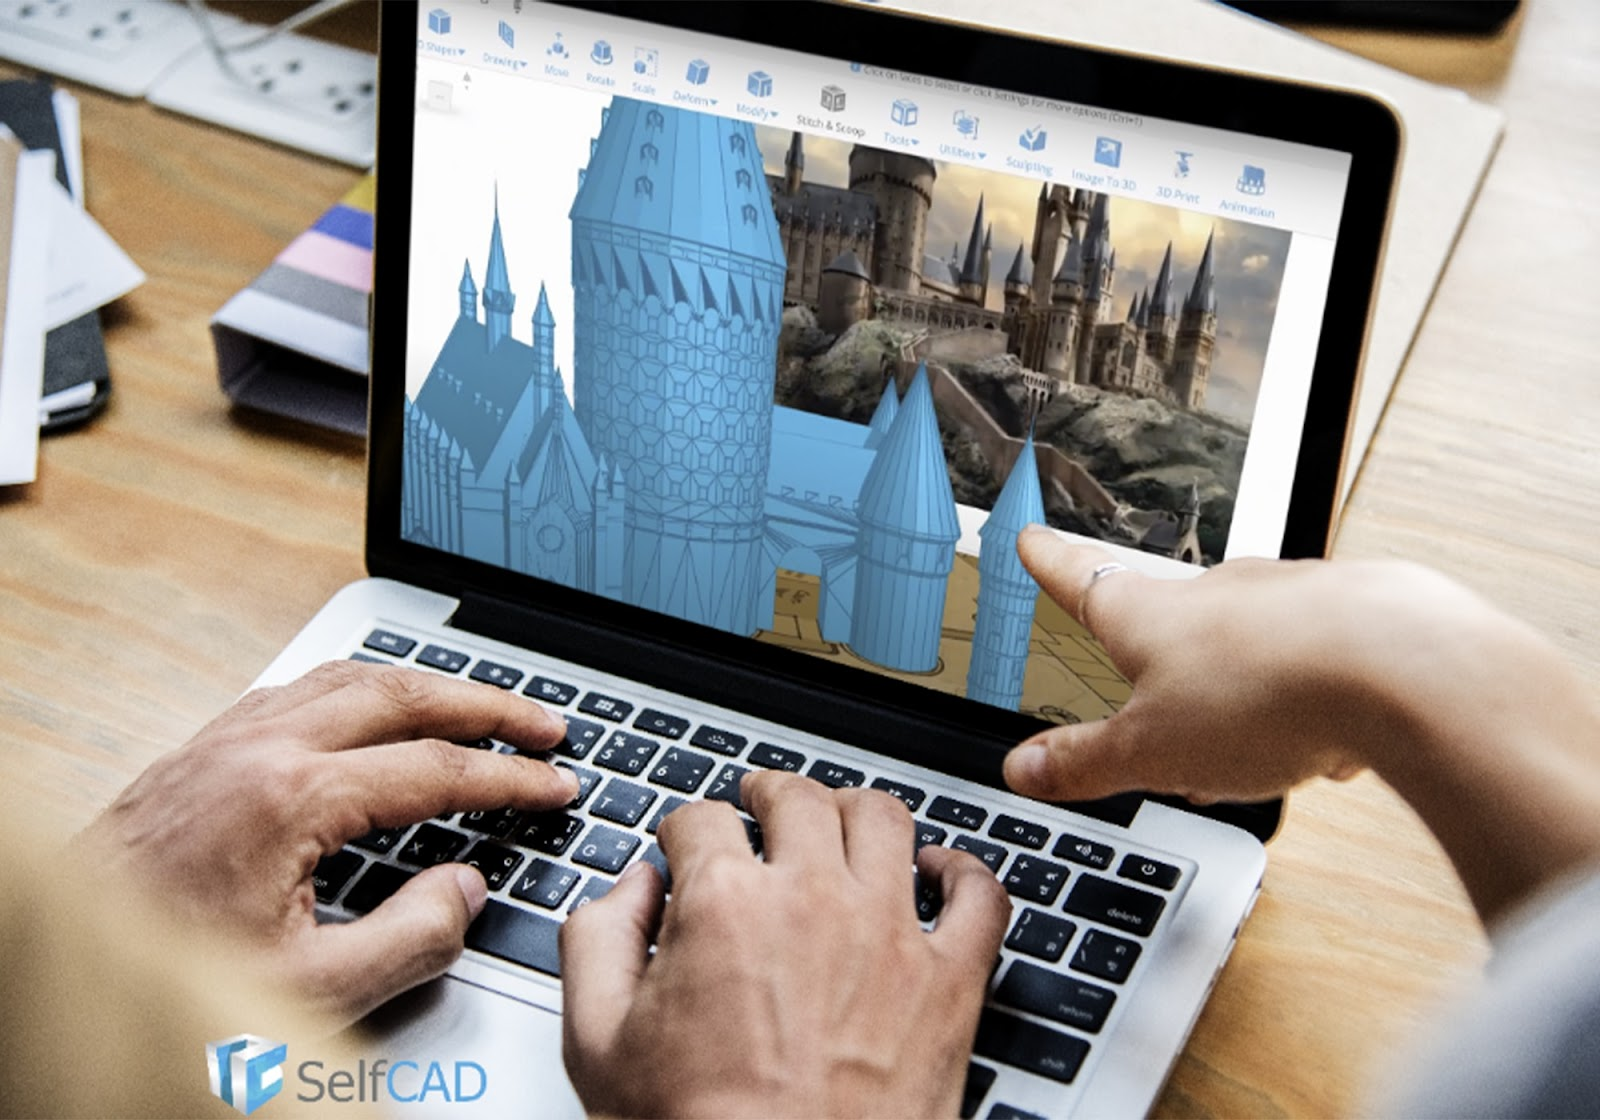 3D modelling software for beginners